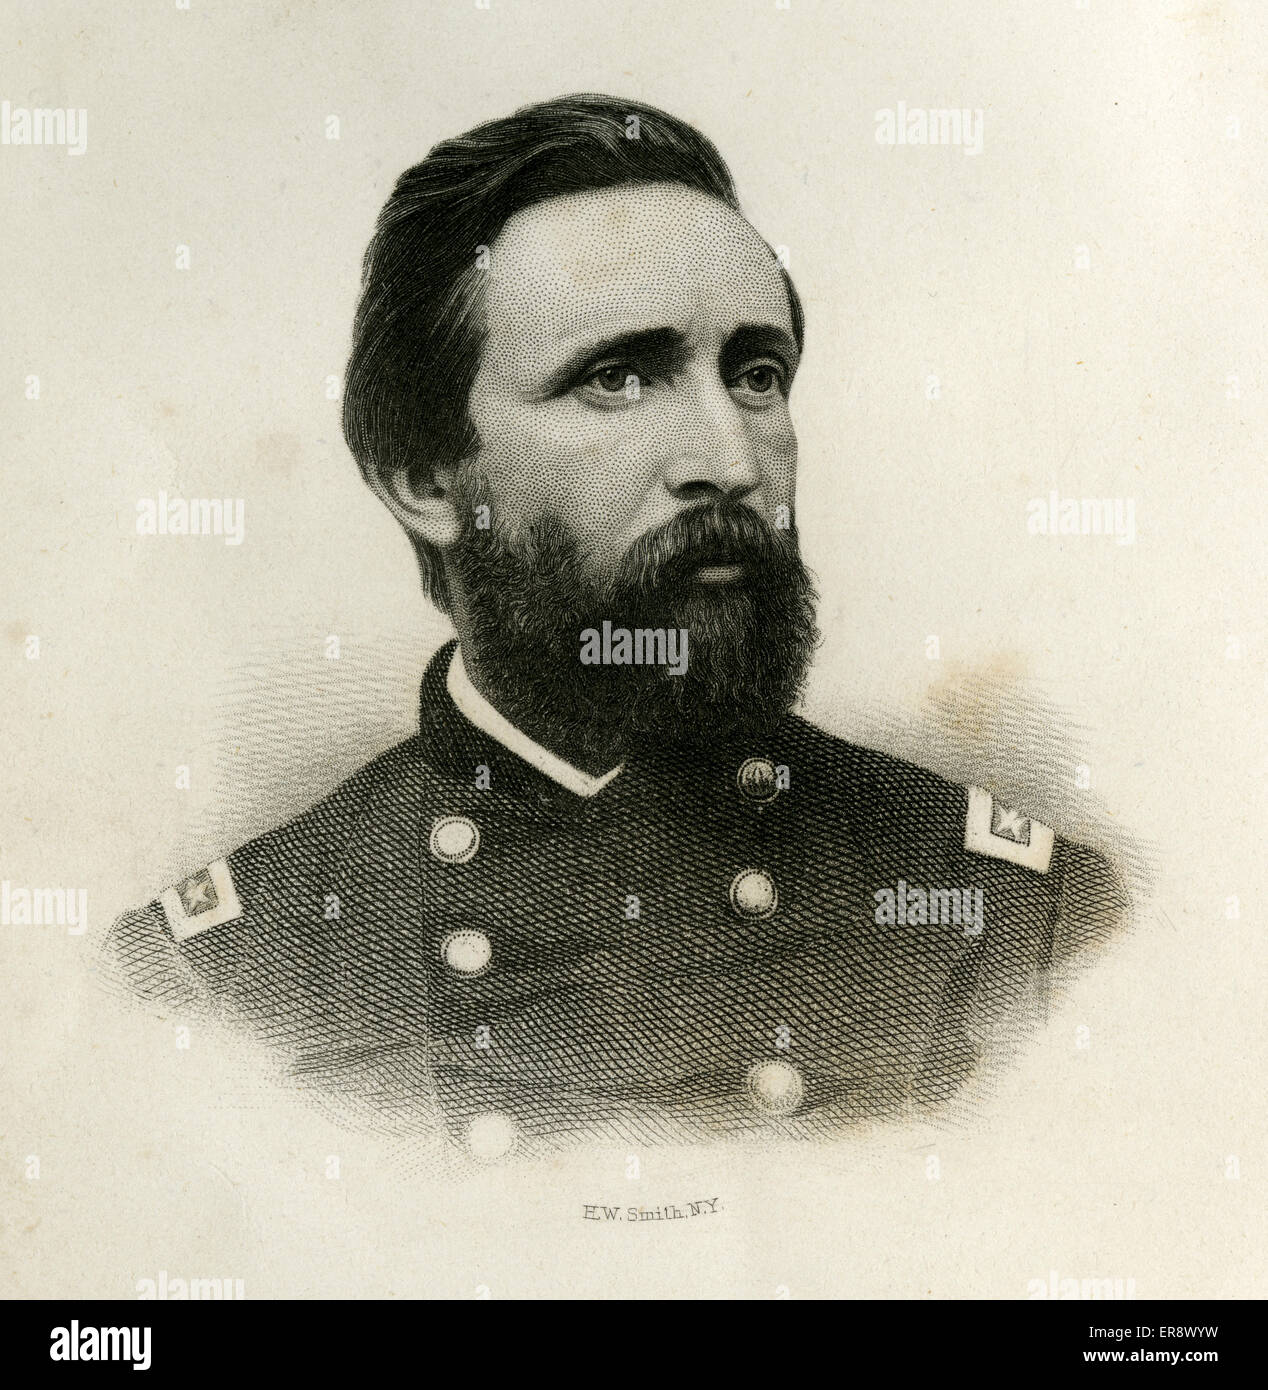 Antique 1866 engraving, Major General Charles Henry Smith, of the 1st Maine Volunteer Cavalry Regiment. - Stock Image